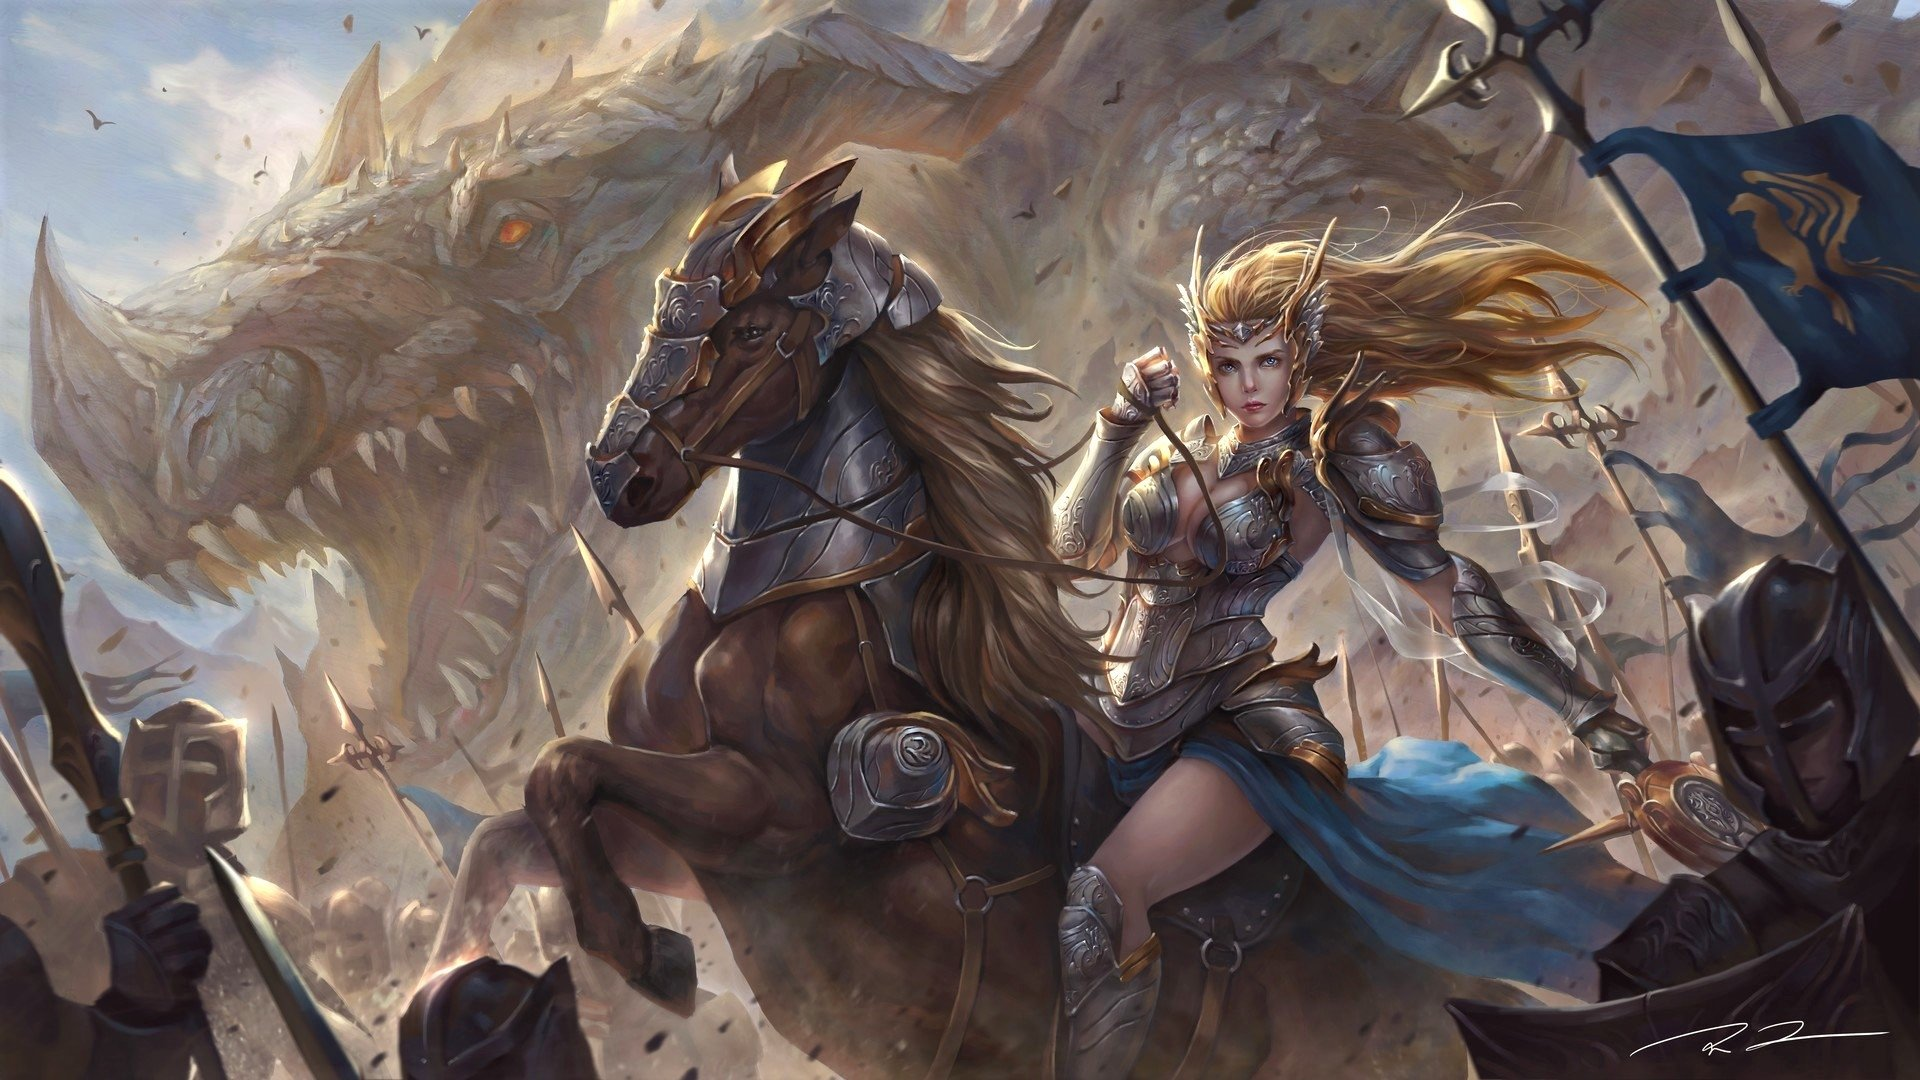 Wolf Girl And Black Prince Wallpaper Hd Fantasy Warrior On Horse Hd Wallpaper Background Image